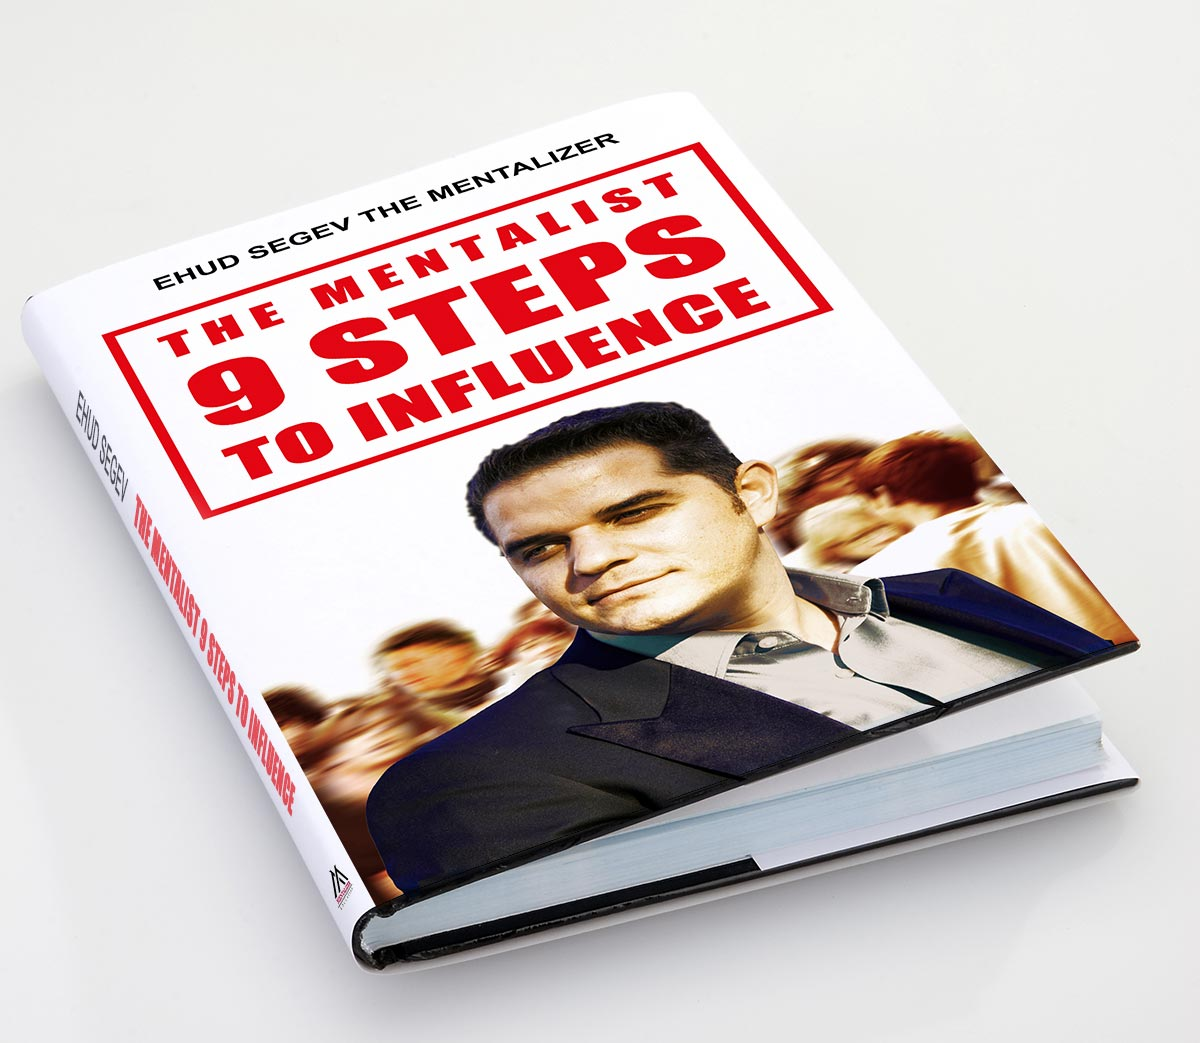 The Mentalist 13 Steps to Influence